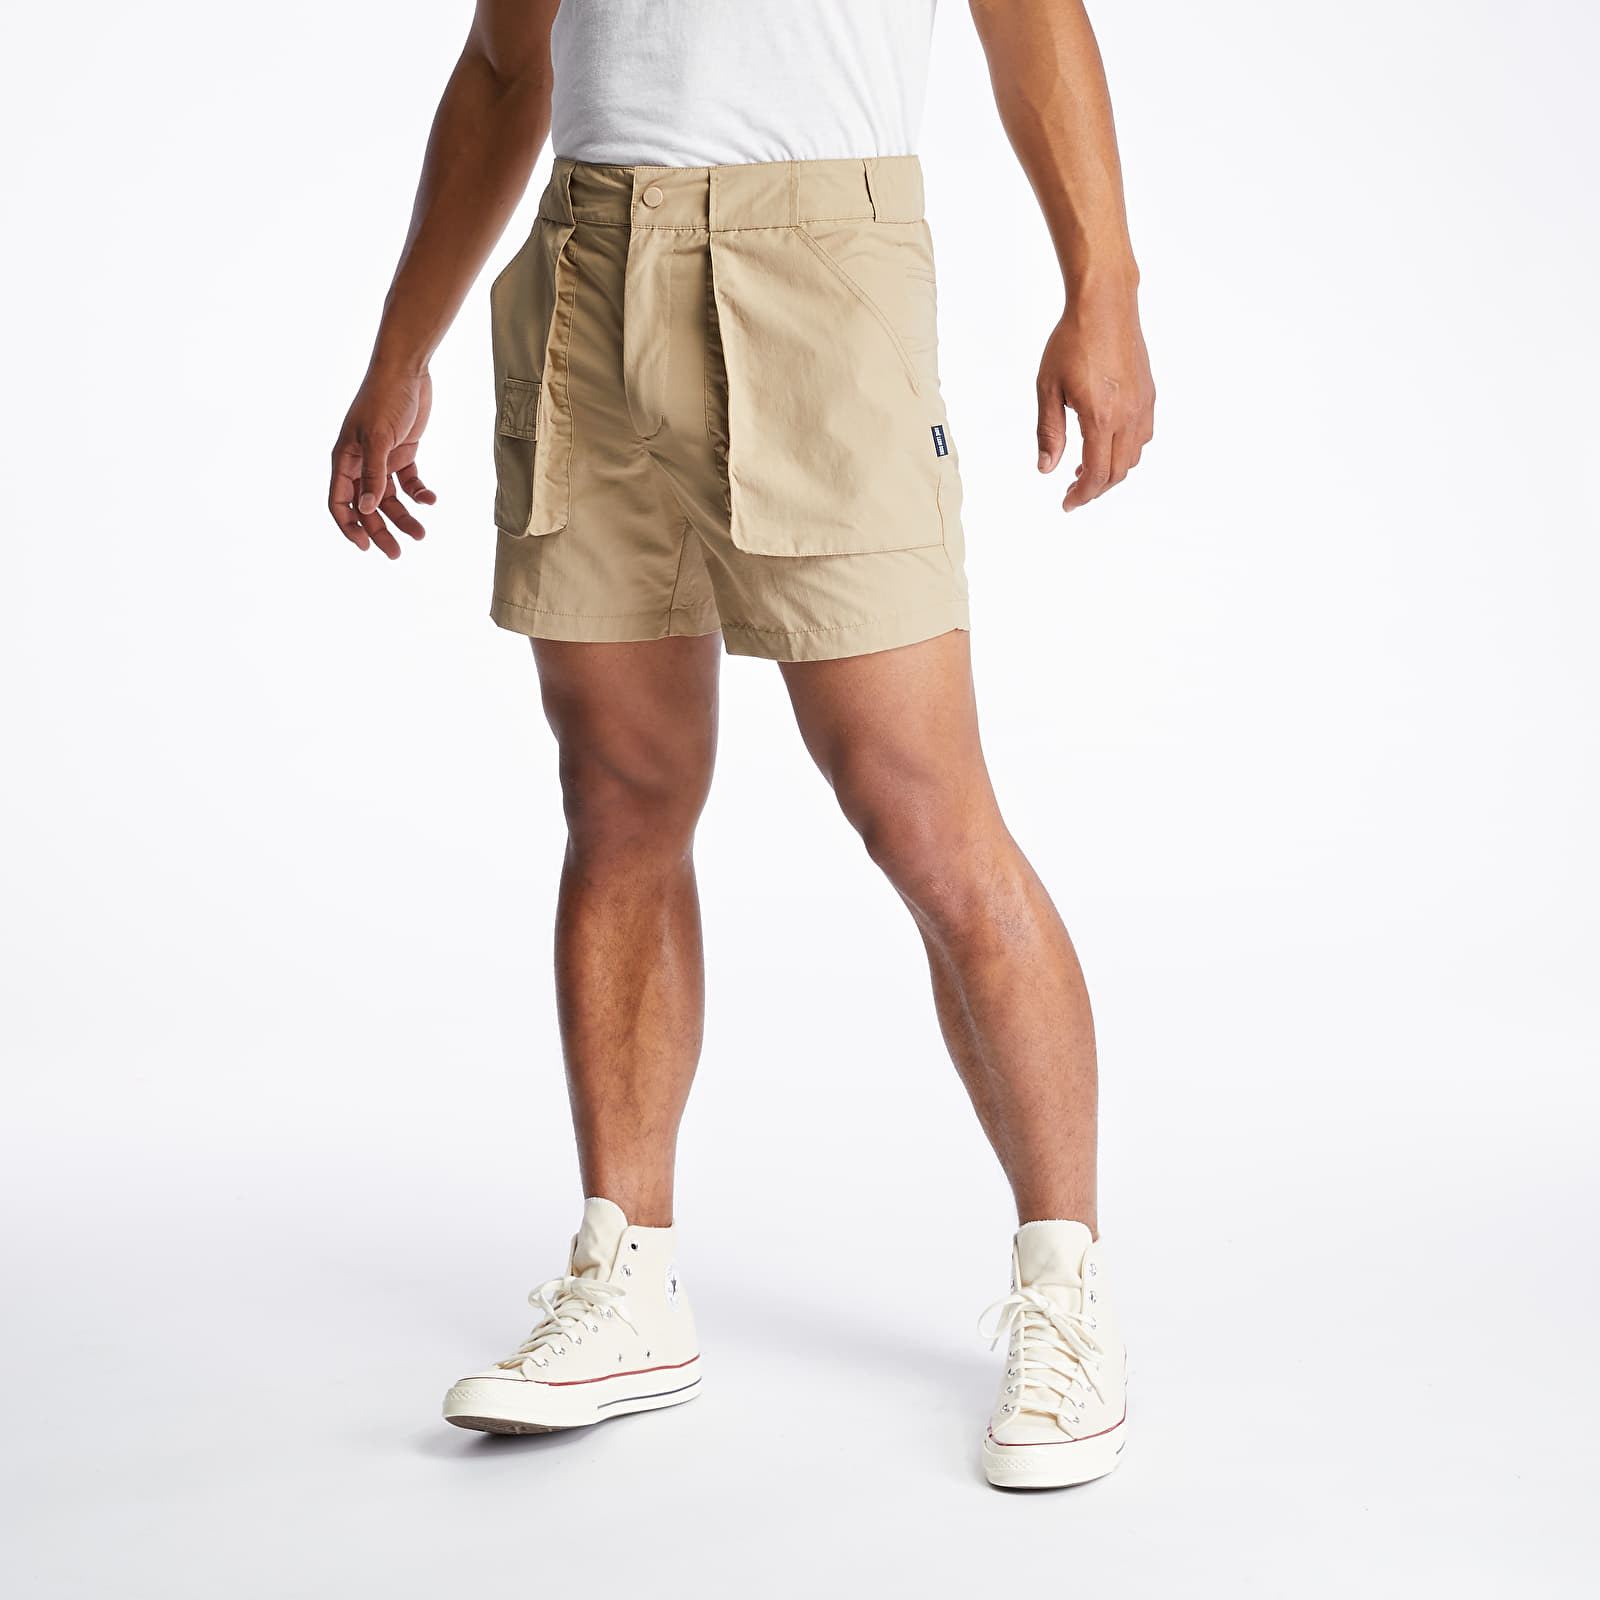 Shorts Aimé Leon Dore Mountaineer Shorts Khaki Tan